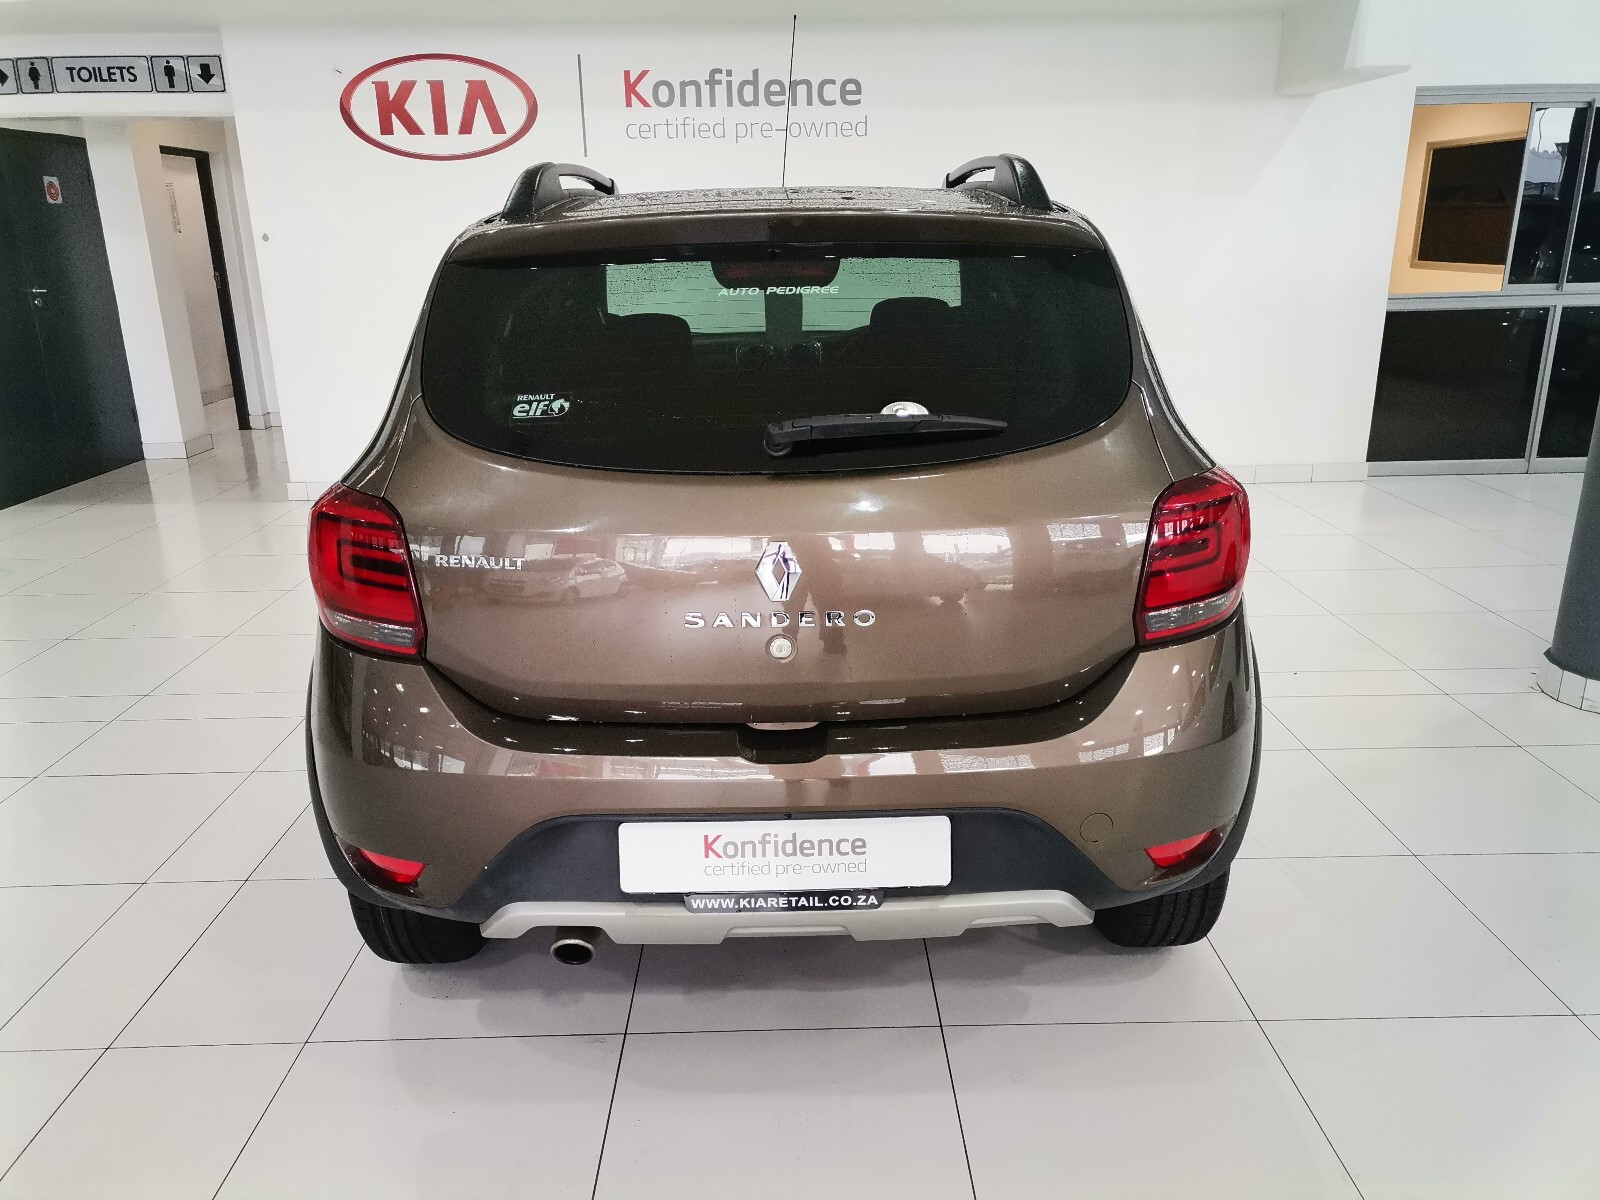 RENAULT 900T STEPWAY EXPRESSION Pinetown 6307425